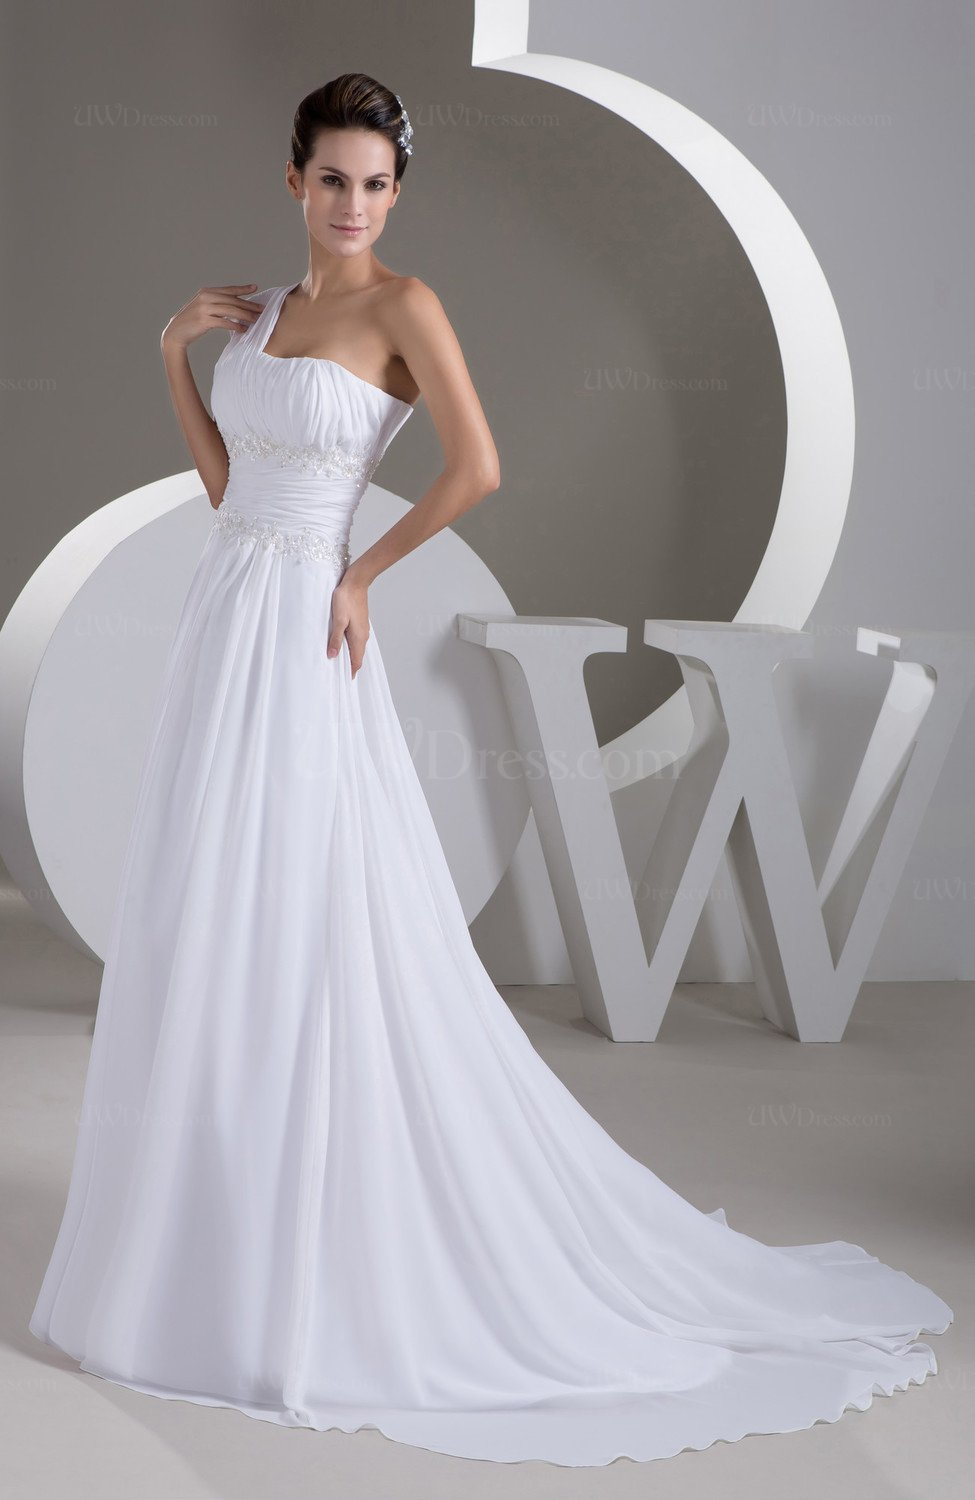 White Inexpensive Bridal Gowns Backless Informal Full Figure Chiffon Spring